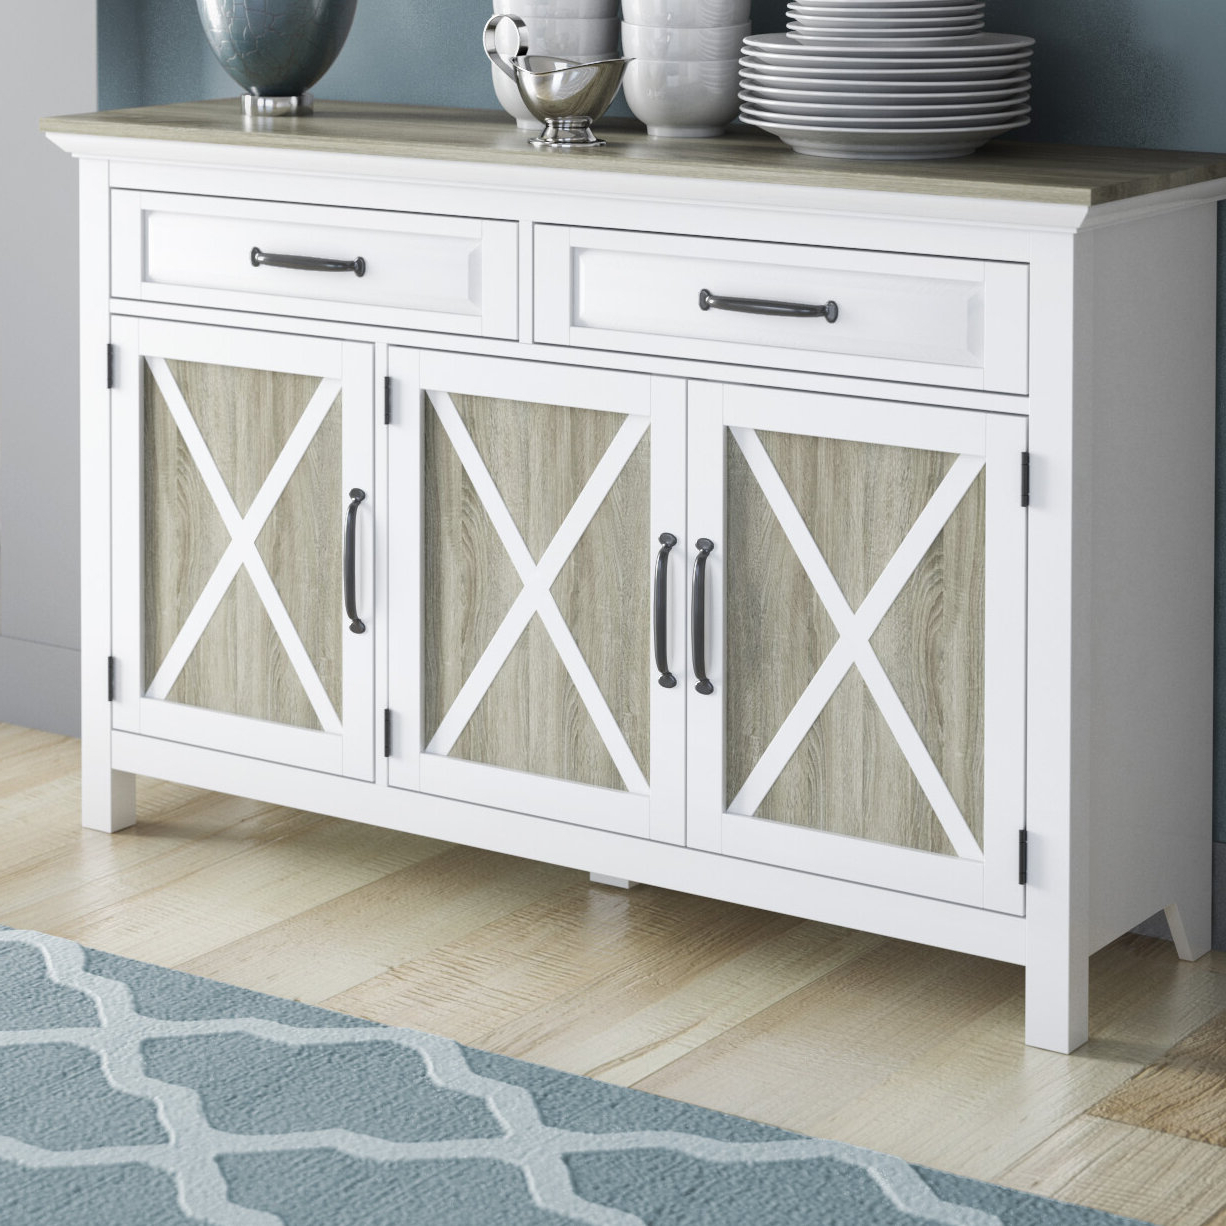 Haverly Sideboard Throughout Favorite Joyner Sideboards (Gallery 4 of 20)